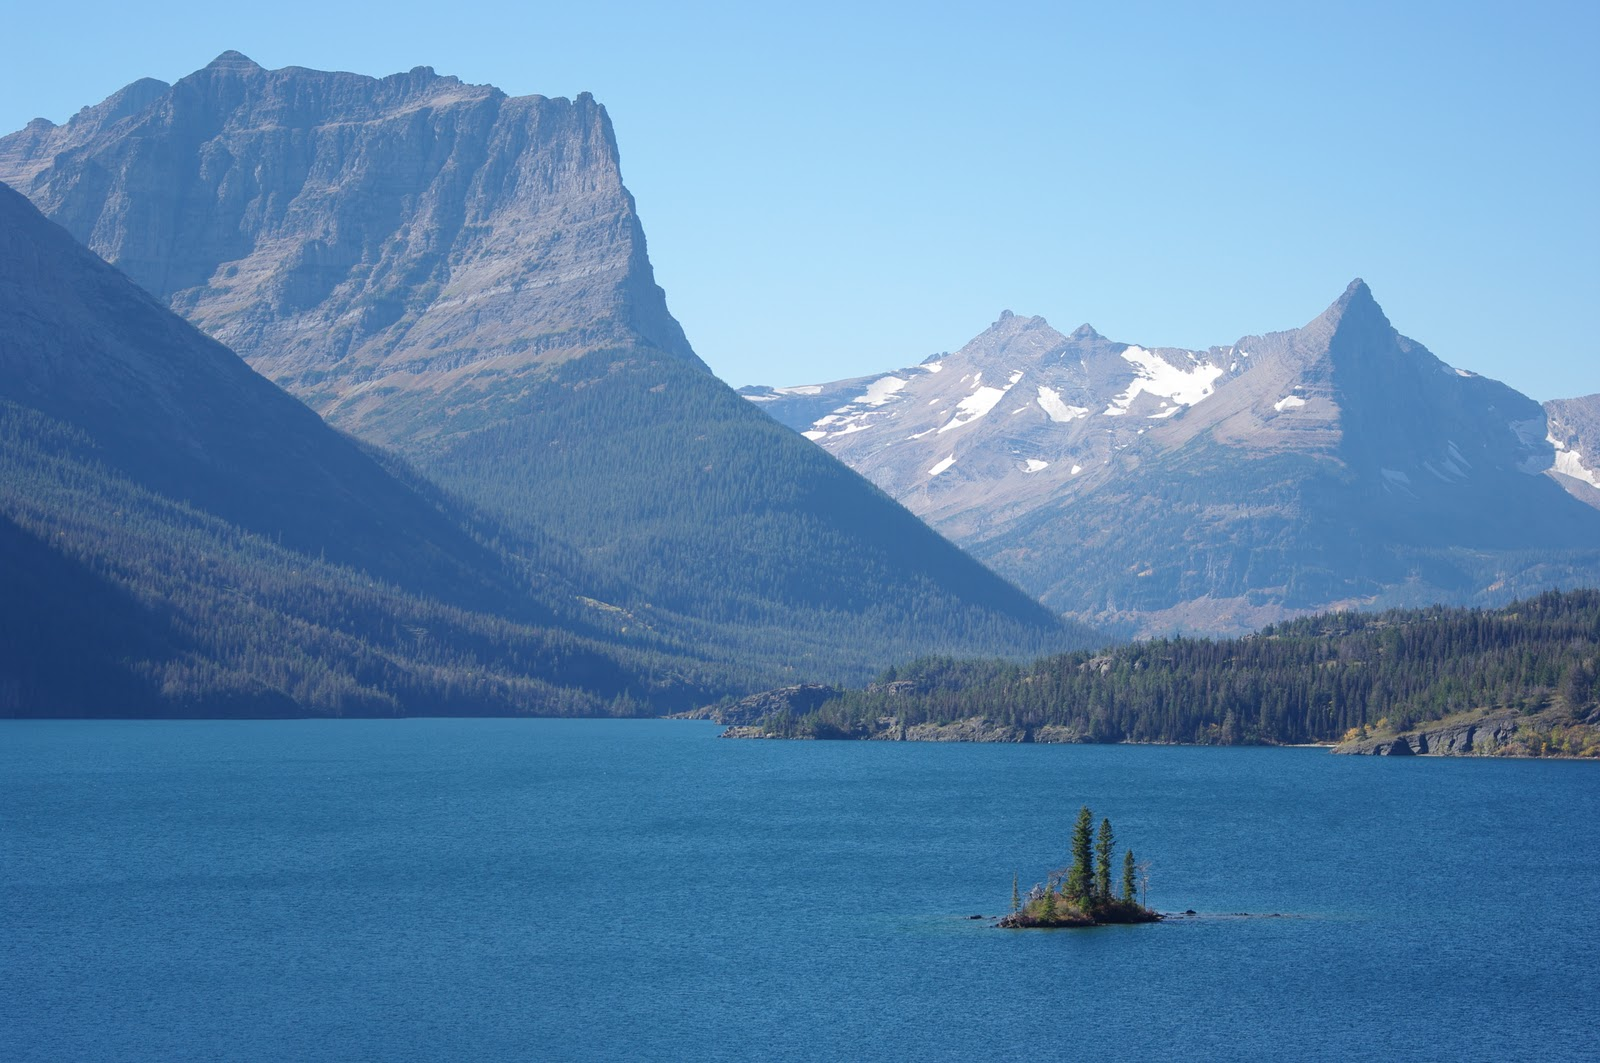 Saint Mary Lake clipart #5, Download drawings